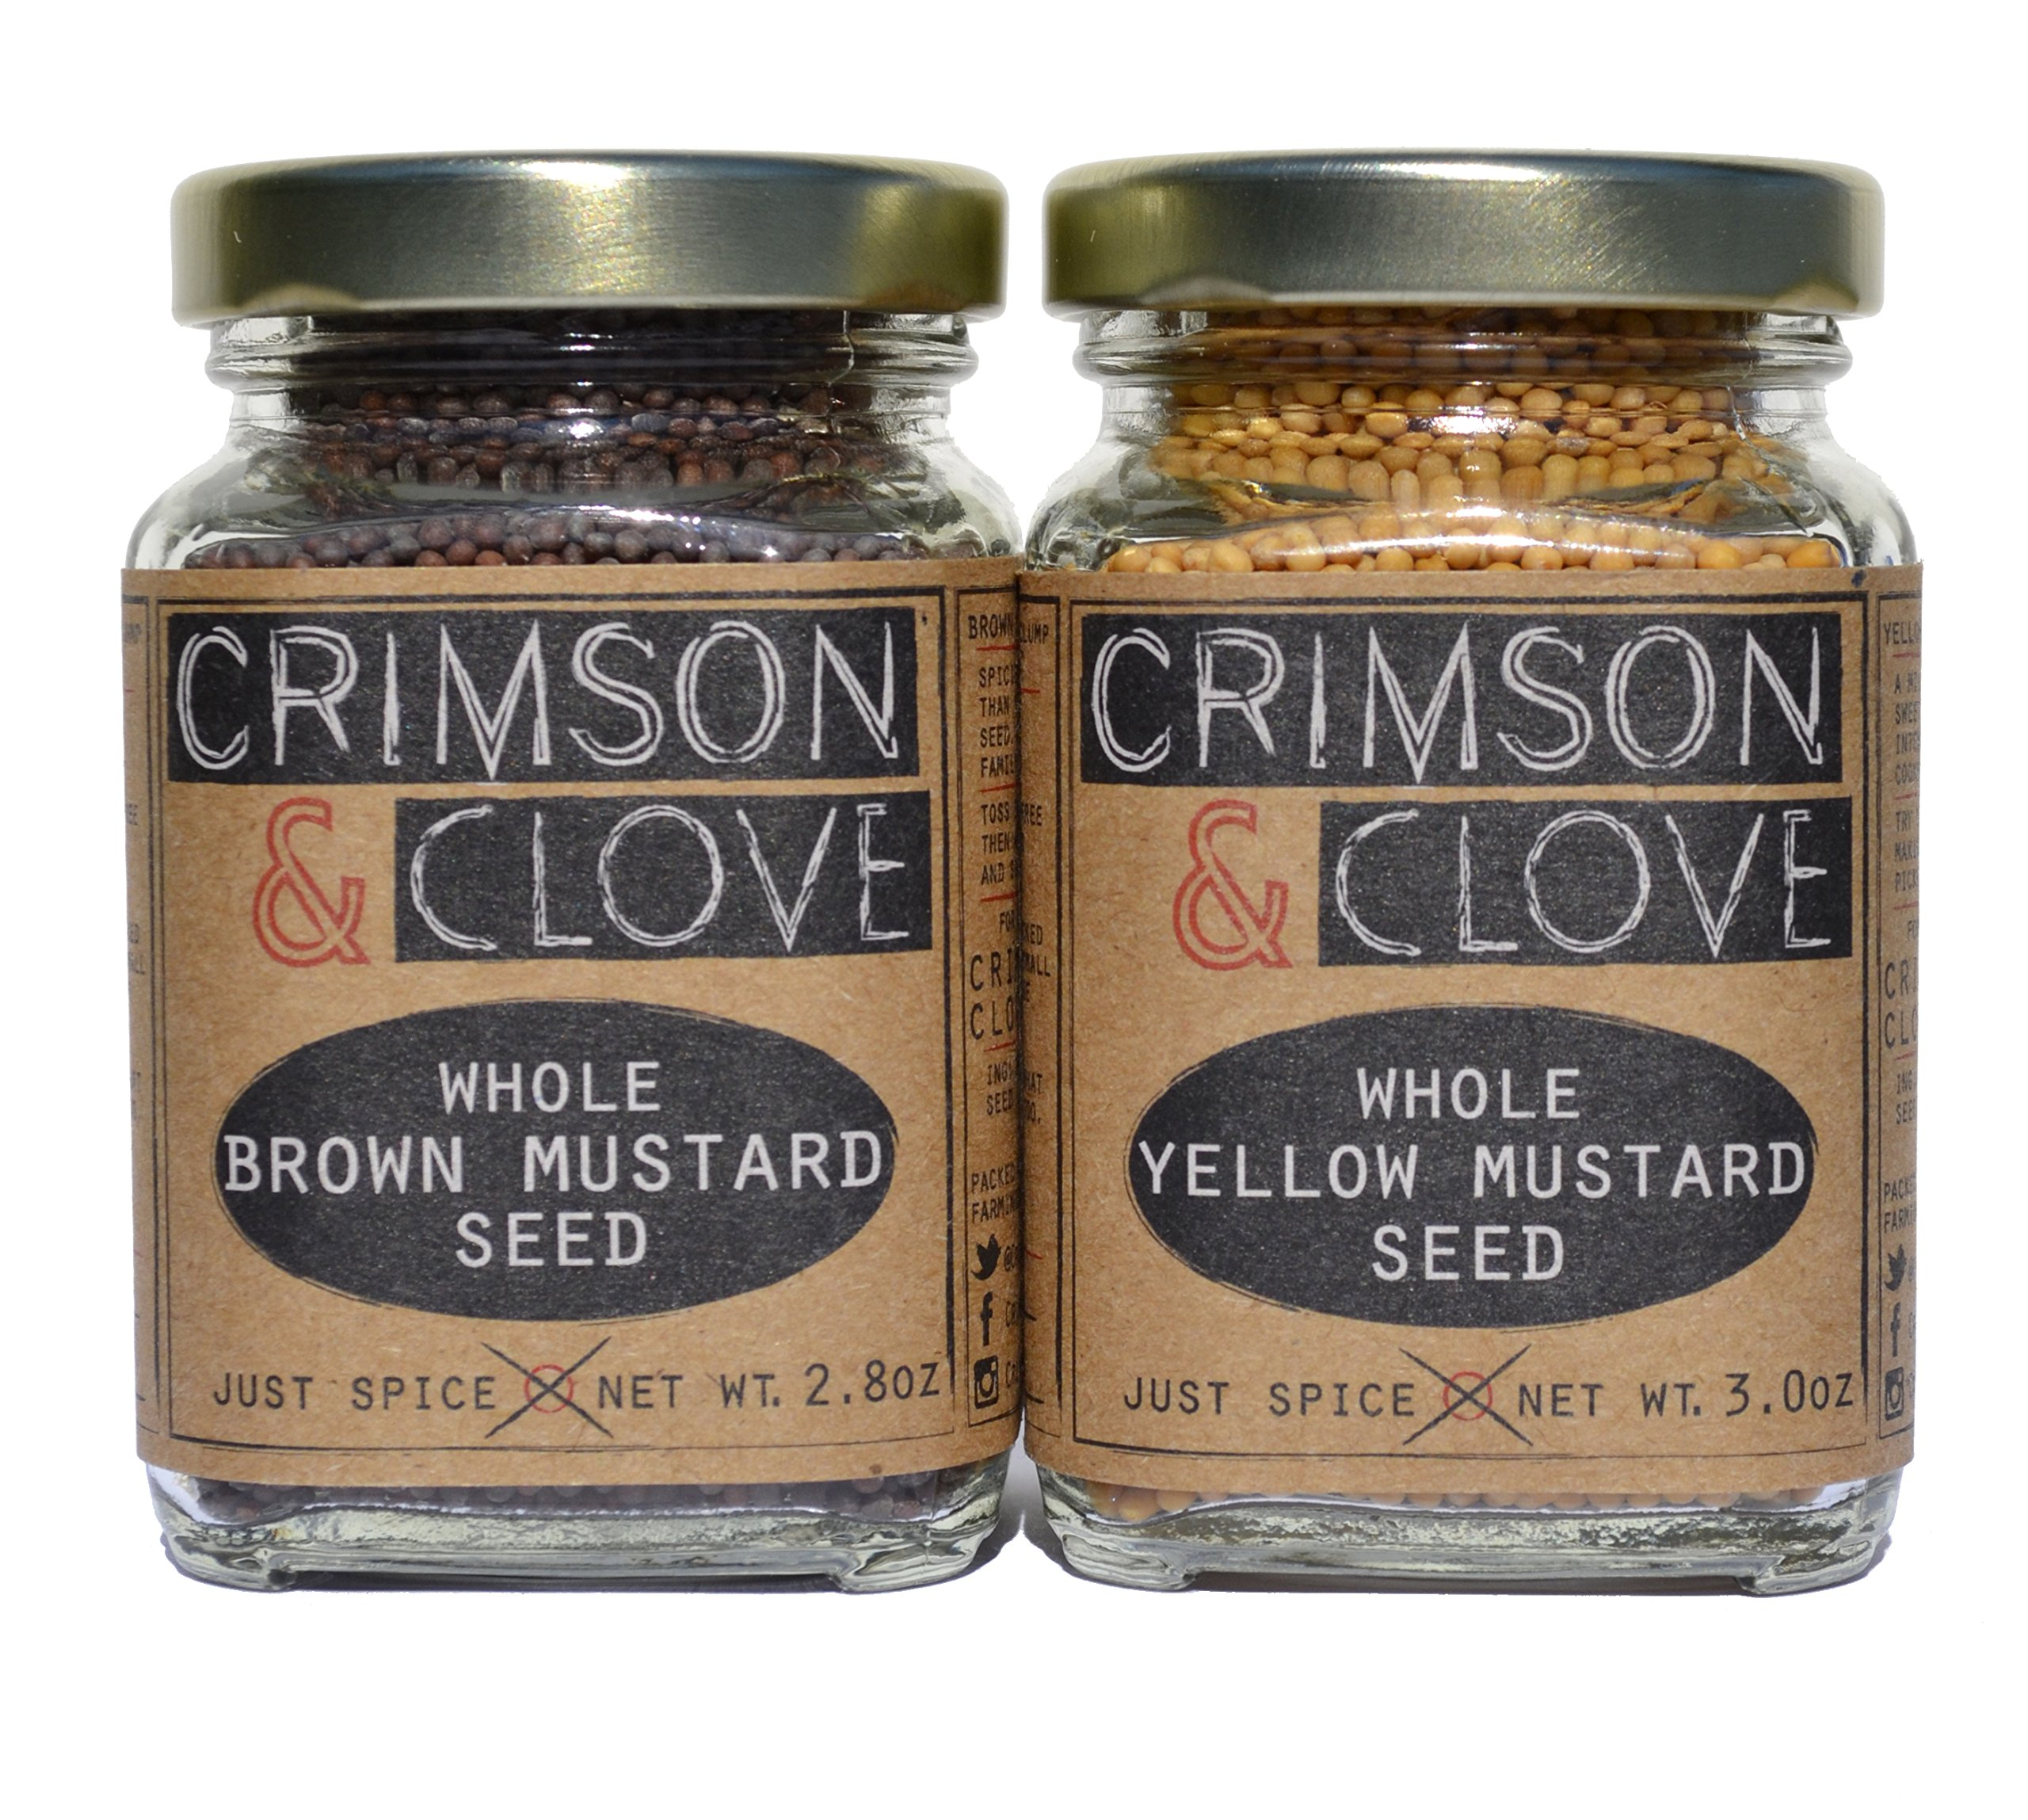 Mustard Seed Gift Set by Crimson and Clove. Brown Mustard Seeds (3 oz.) and Yellow Mustard Seeds (2.8 oz.)